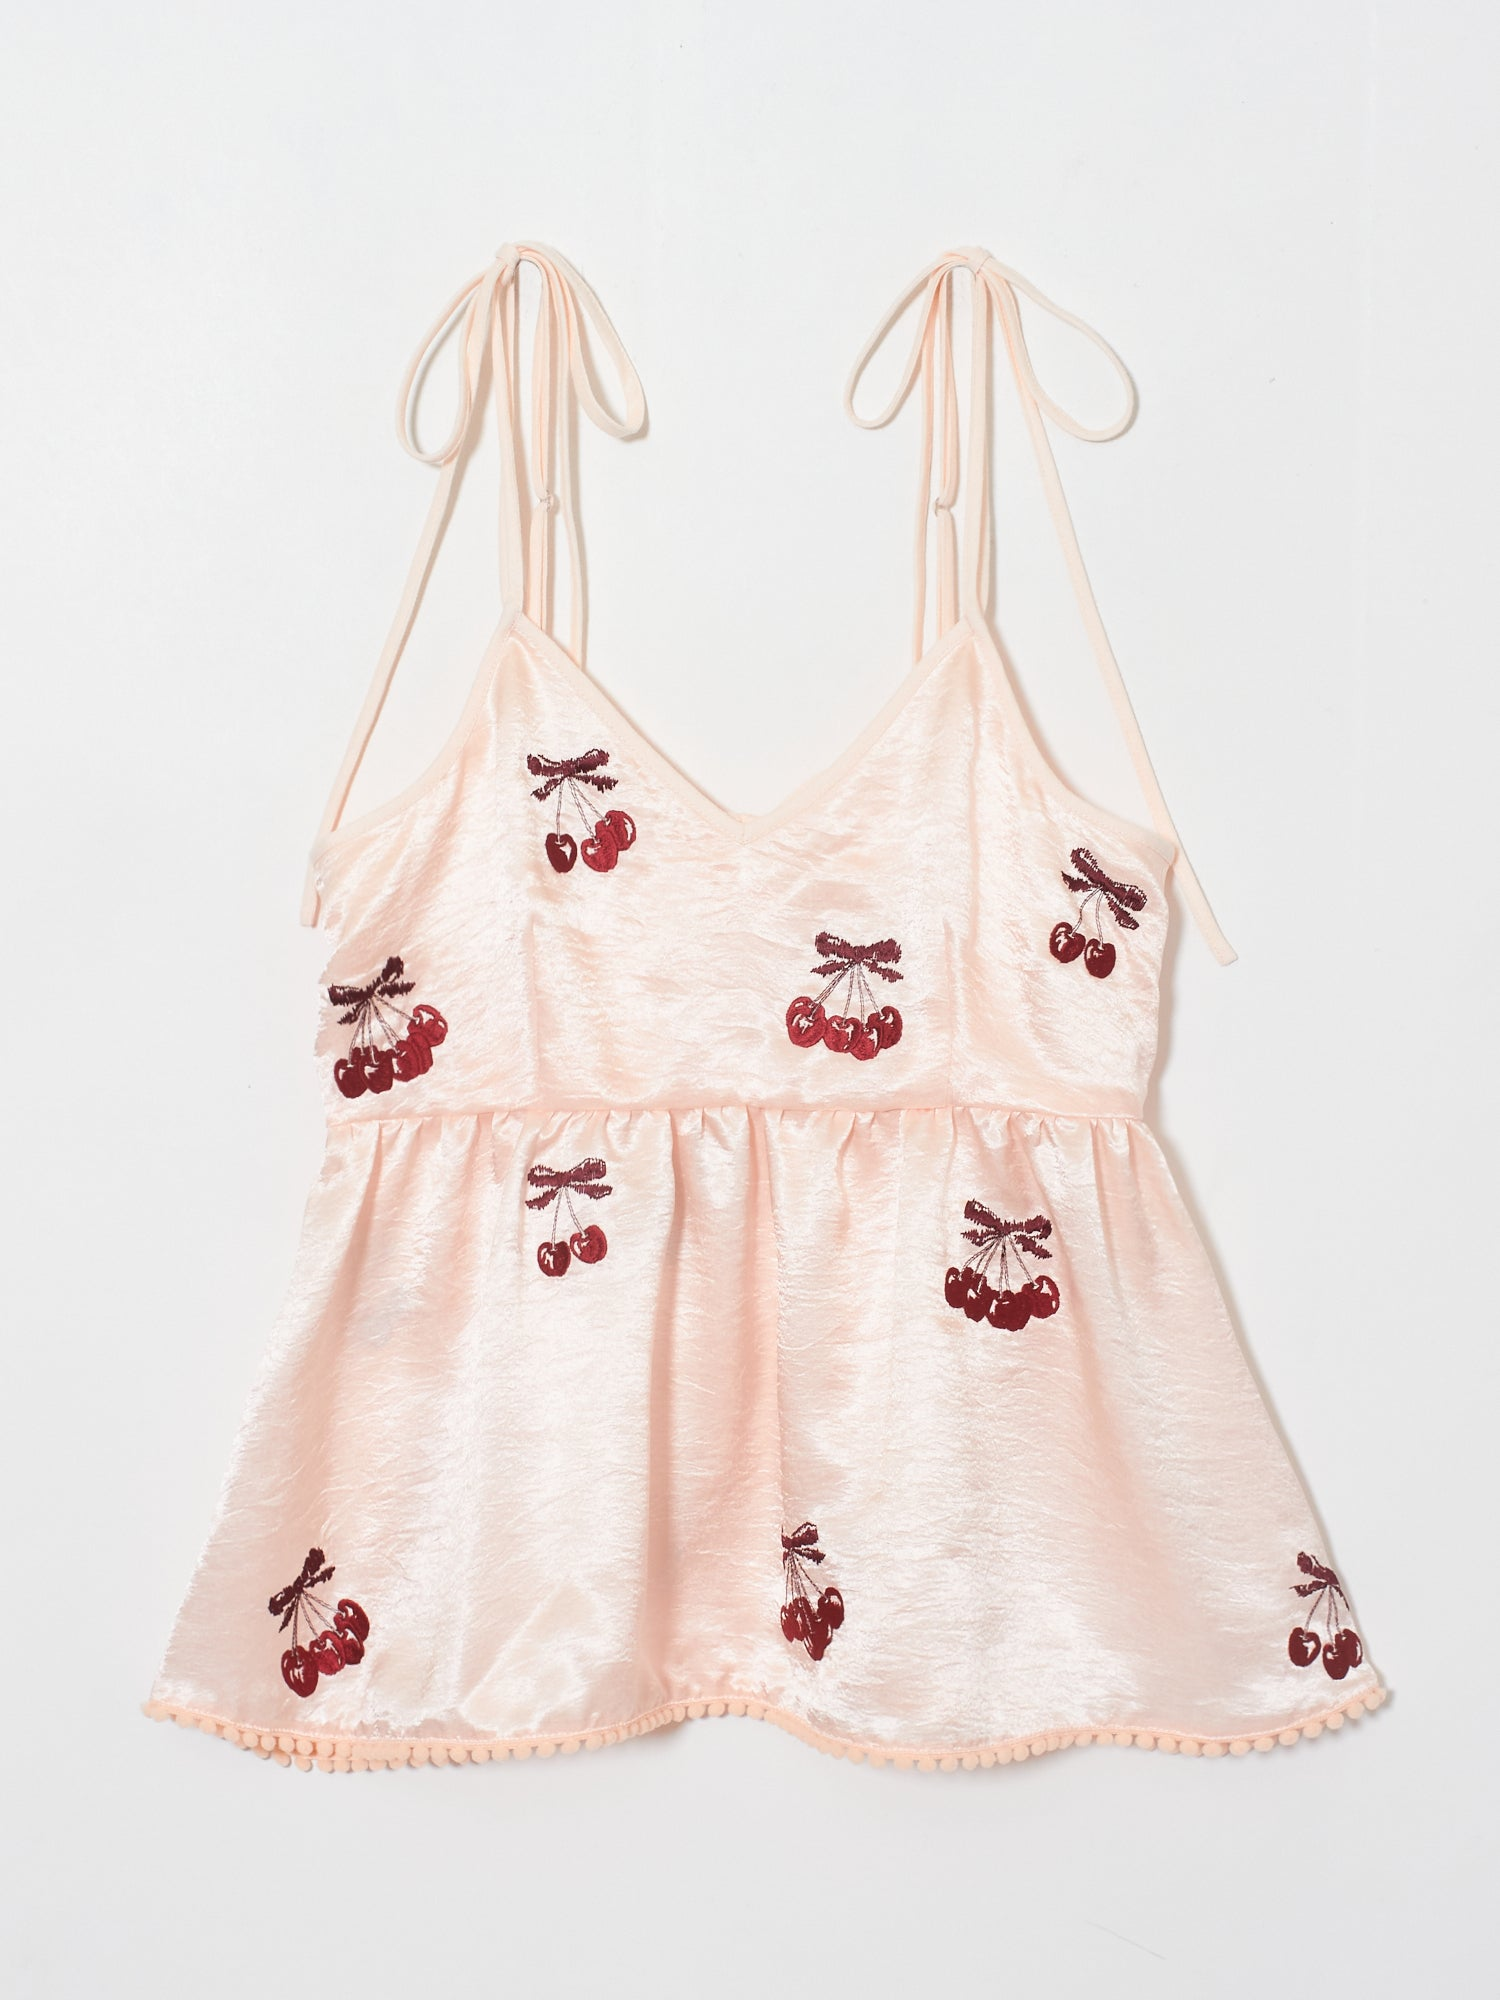 Red cherry satin camisole